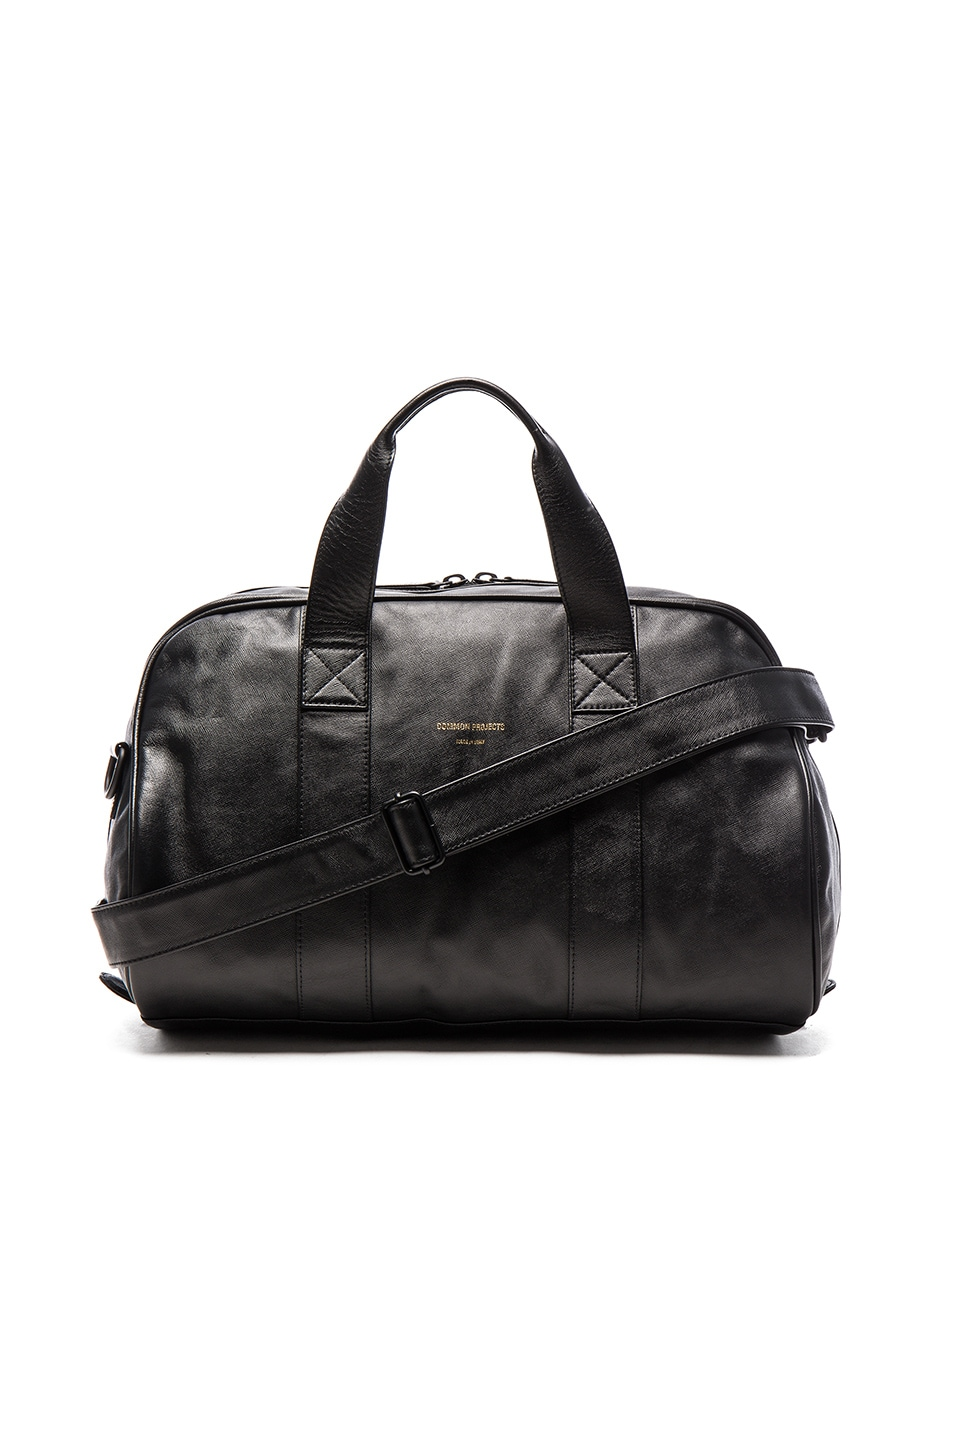 d54518188a Image 1 of Common Projects Leather Duffel Bag in Black